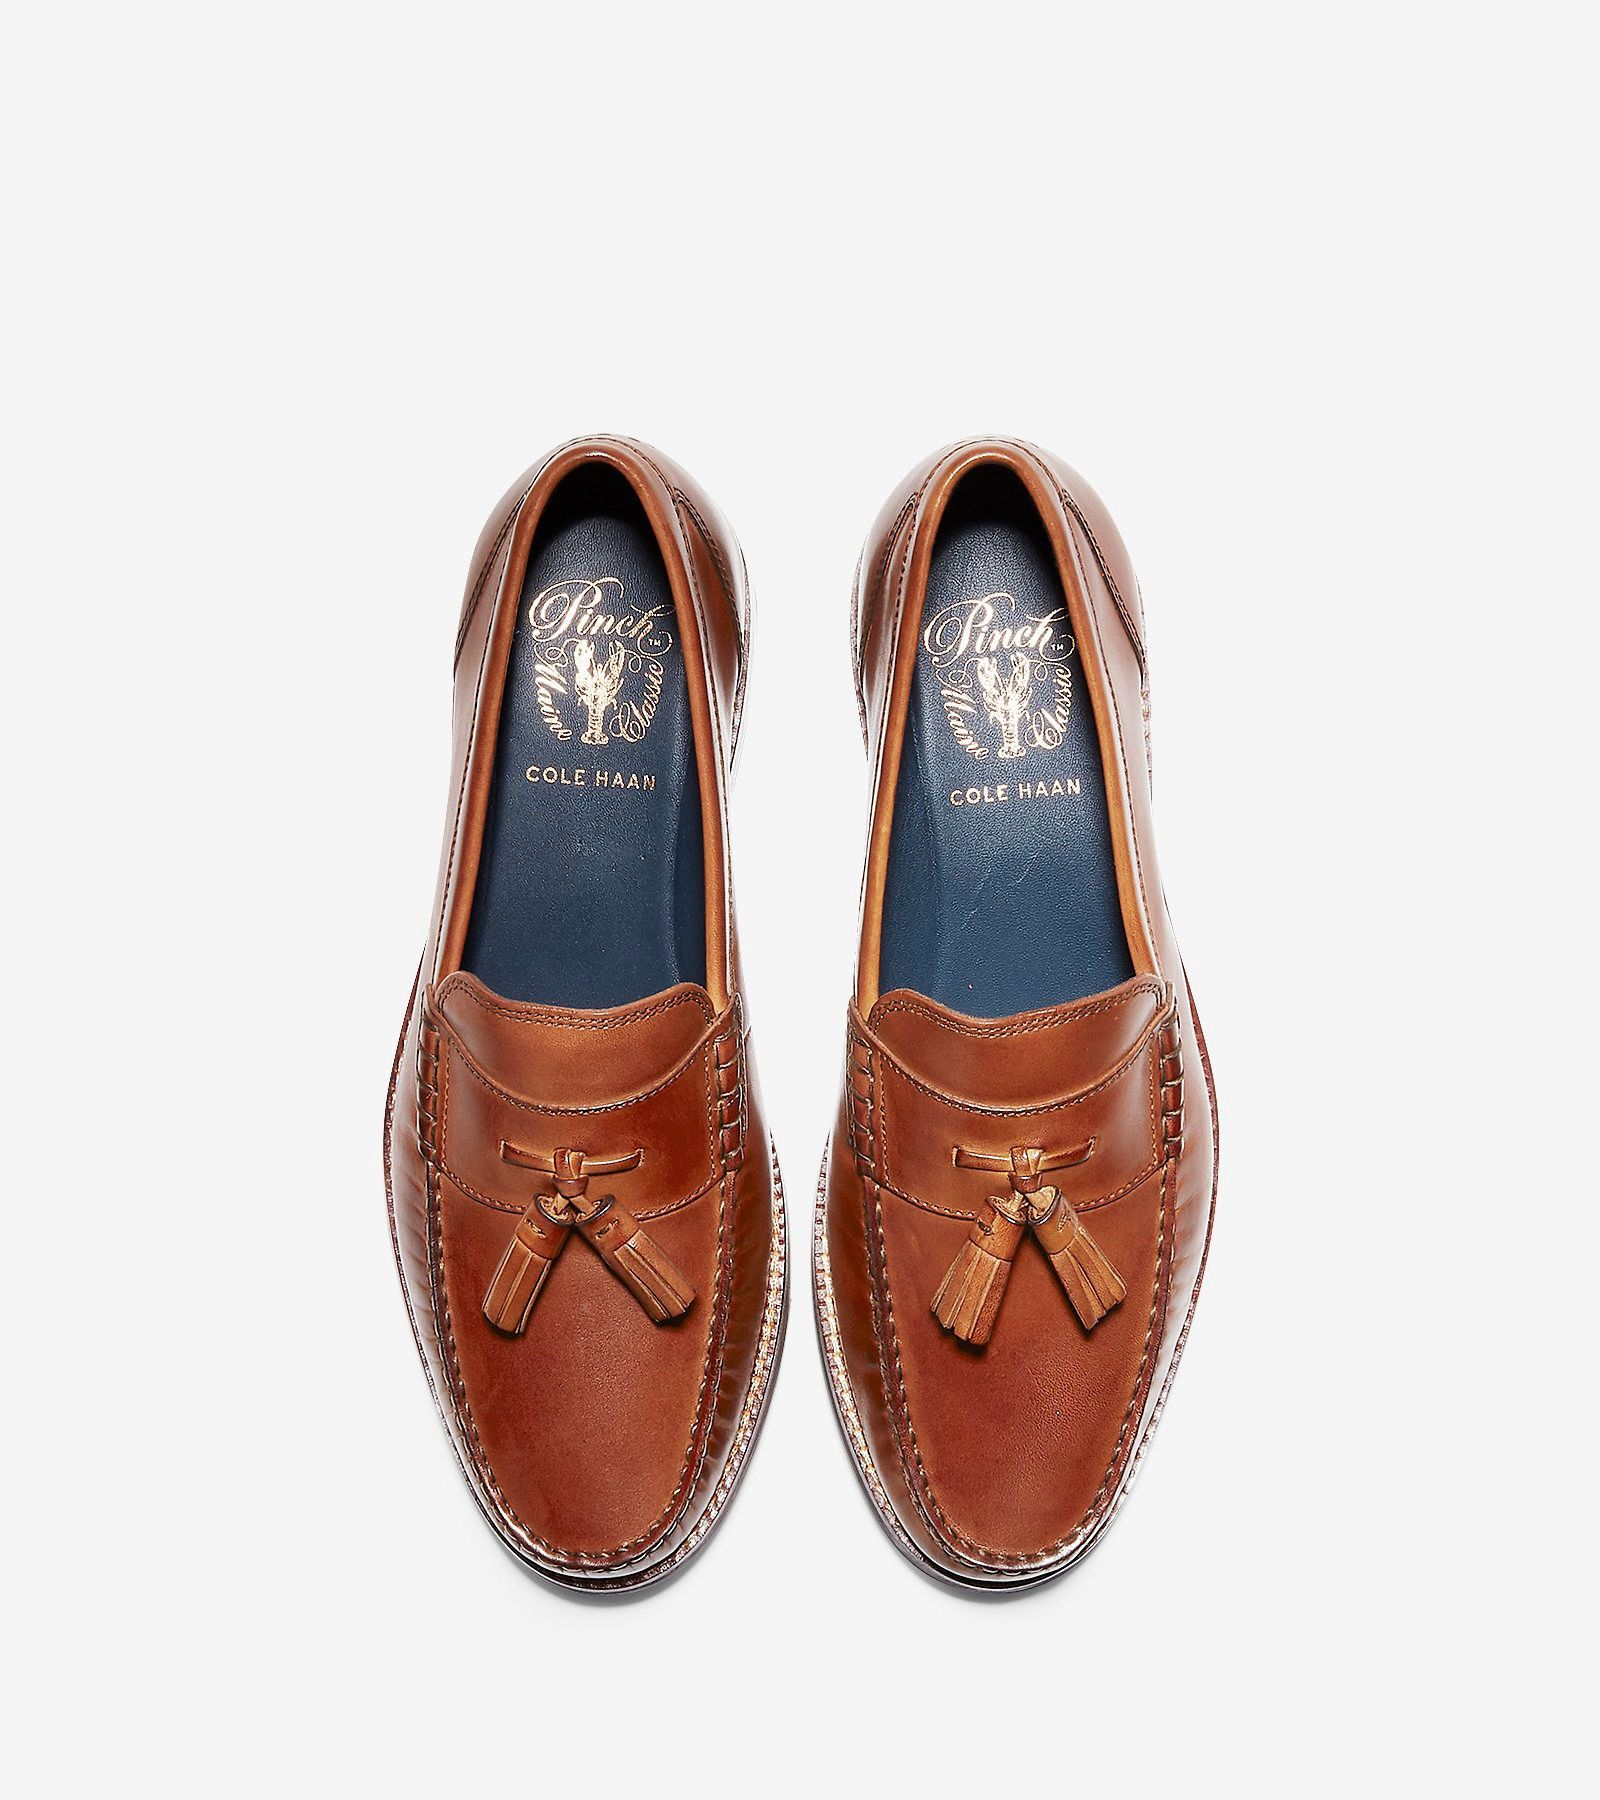 b31dc89bfe5 Cole Haan Men s Pinch Grand Classic Tassel Loafer - British Tan 8 W Wide